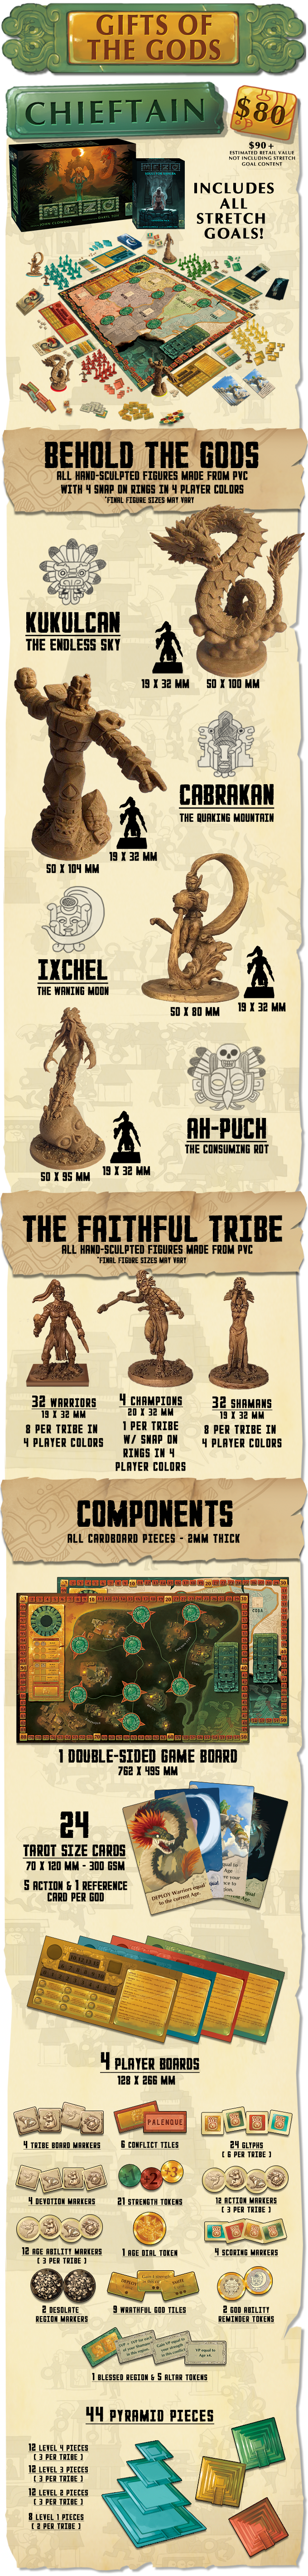 The CHIEFTAIN PLEDGE is the core experience featured in our playthroughs with the Dice Tower and Man Vs. Meeple. It contains beautiful unit miniatures for 4 tribes (3 sculpts per tribe), as well as 4 massive Mayan gods! With all gods unlocked, this pledge level offers 91 possible game play combinations of gods from 2-4 players! Estimated retail value of $90--not including Souls for Xibalba content.